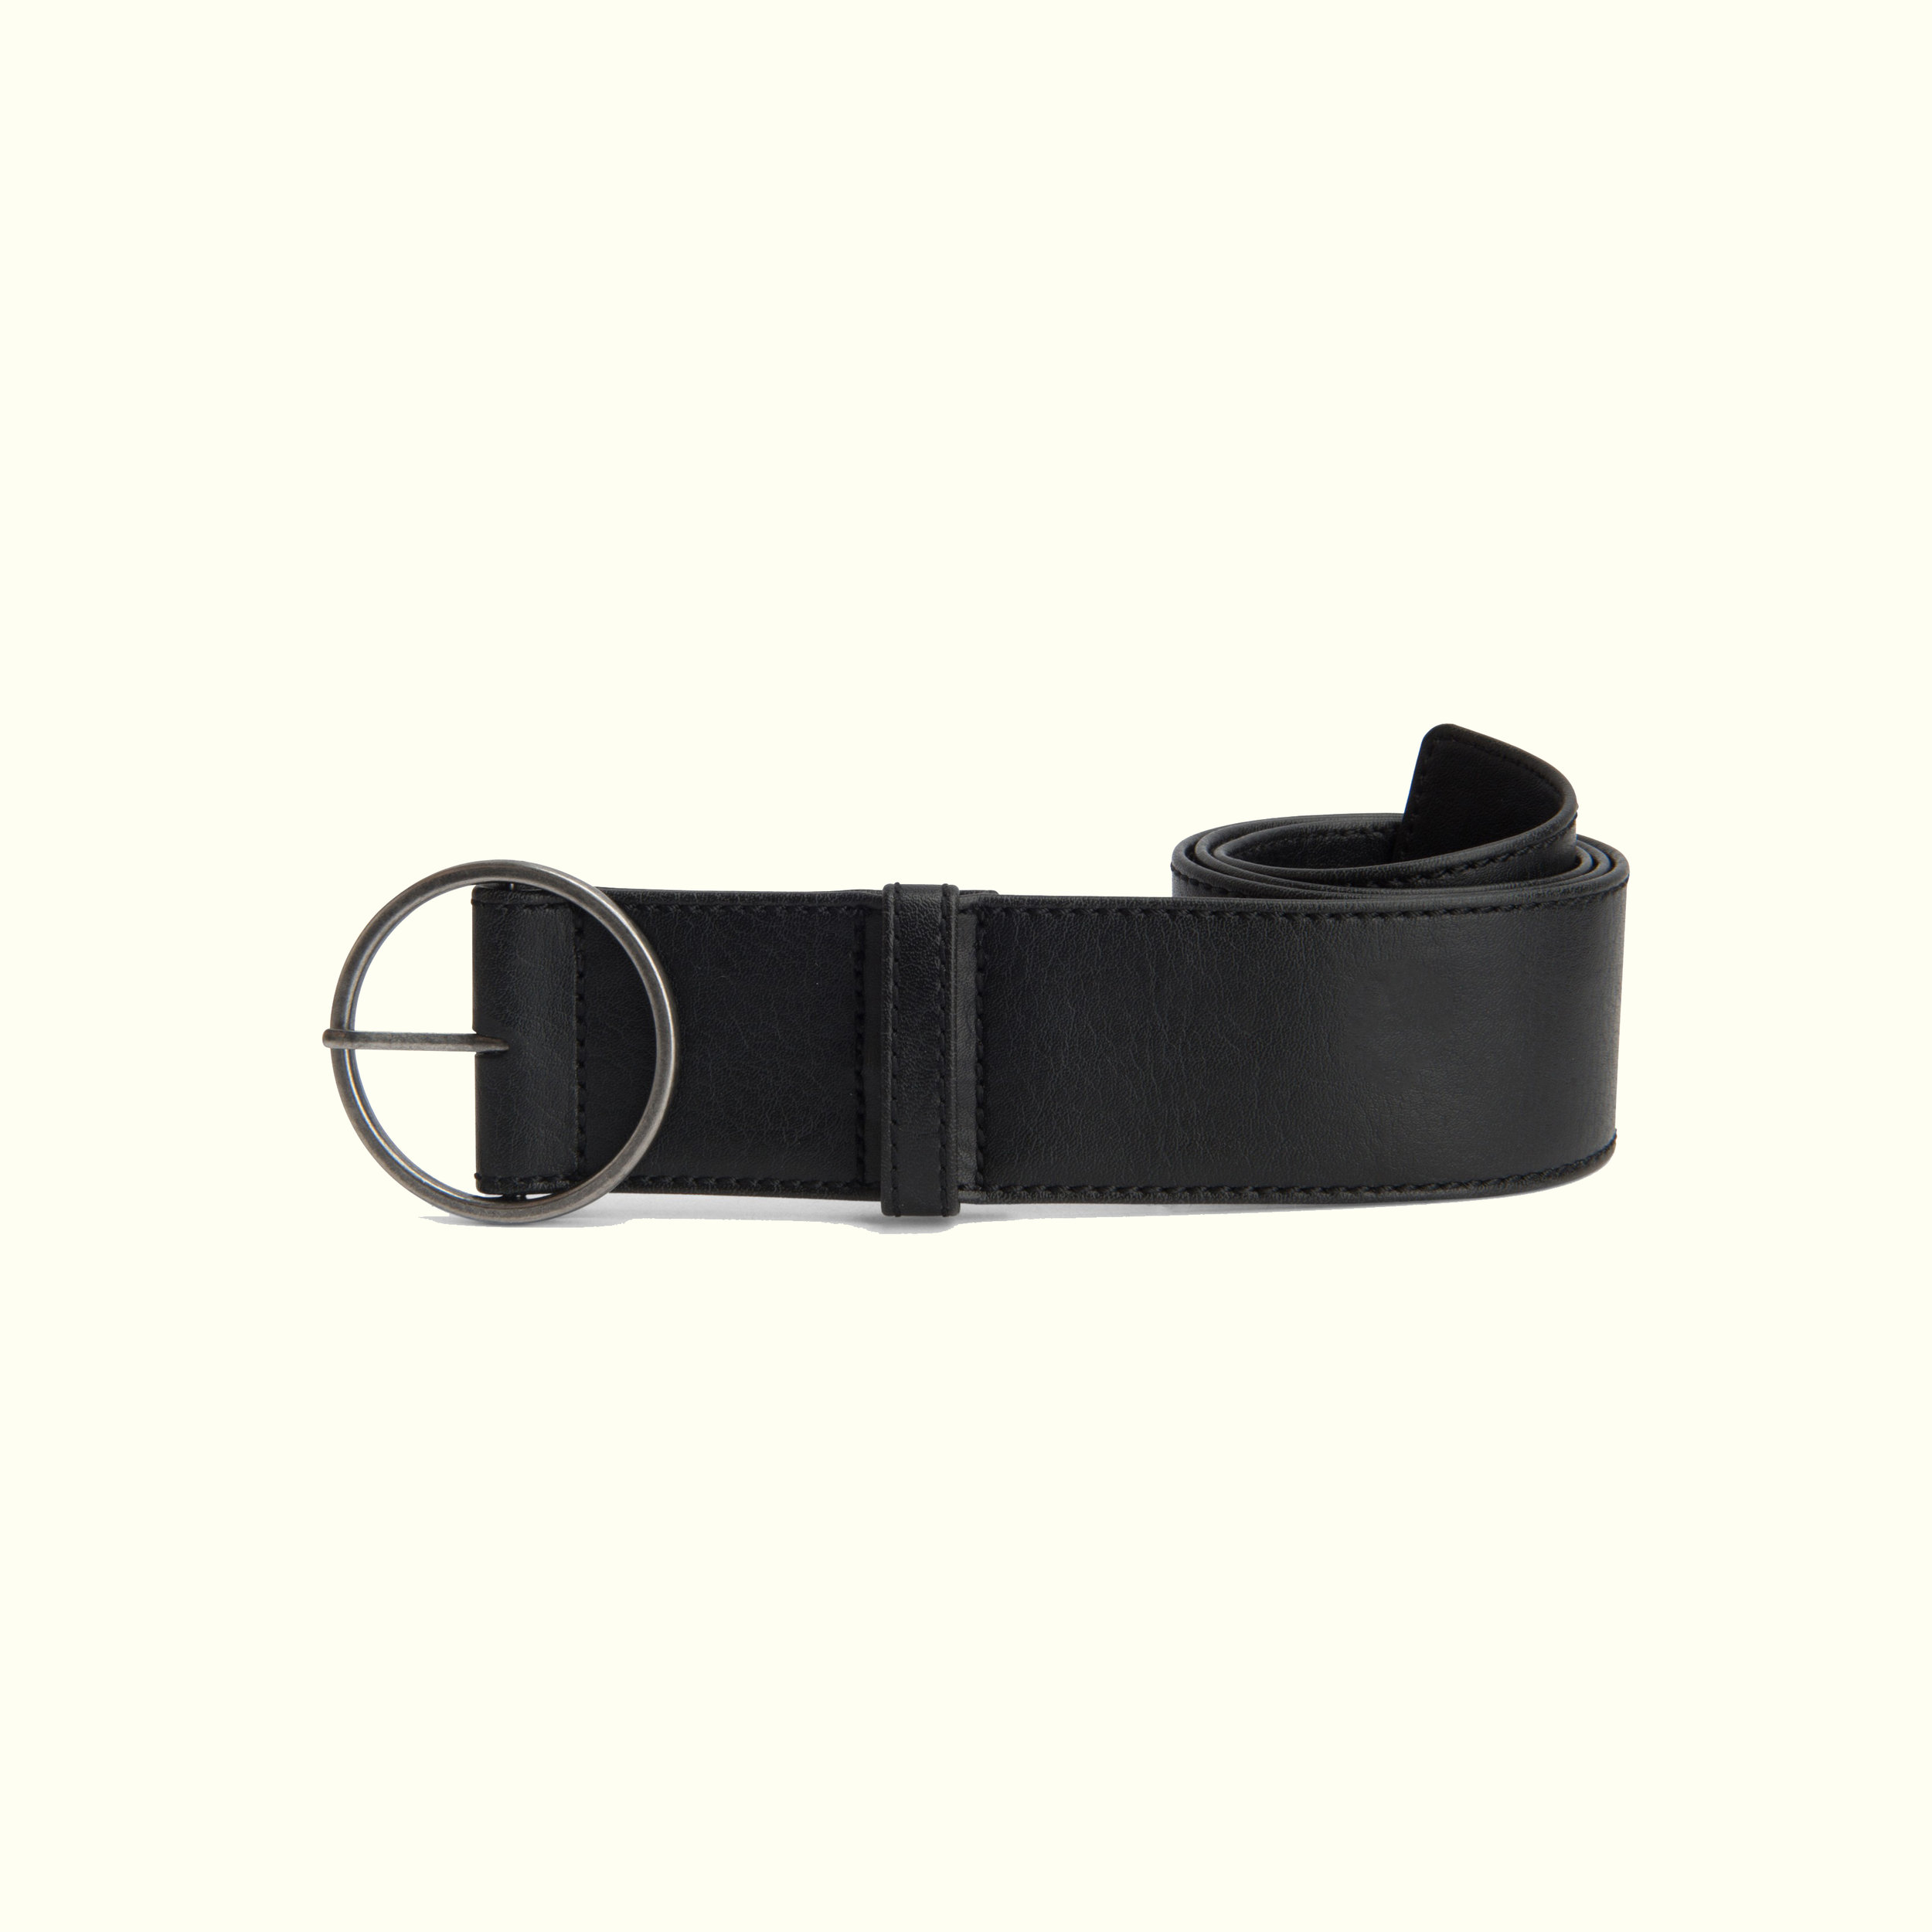 Matt & Nat - At $45, Matt & Nat's Ora belt is chic and minimalist with a retro flair.With a two-inch width, it's made to sit low on your waist and also comes in other colors, if you must.